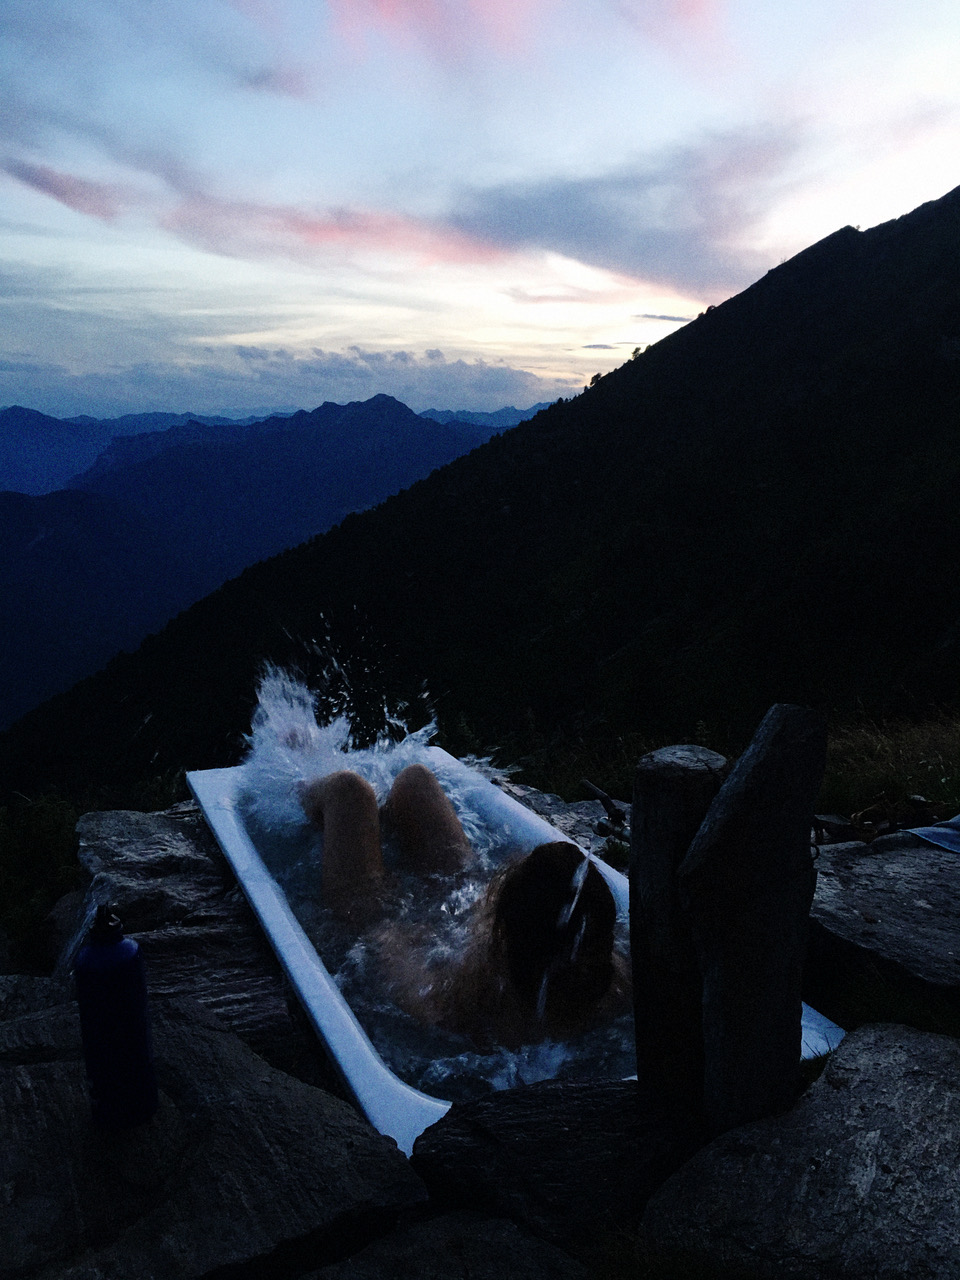 Photographer Rahel Weiss selects mountain baths in Ticino, Switzerland